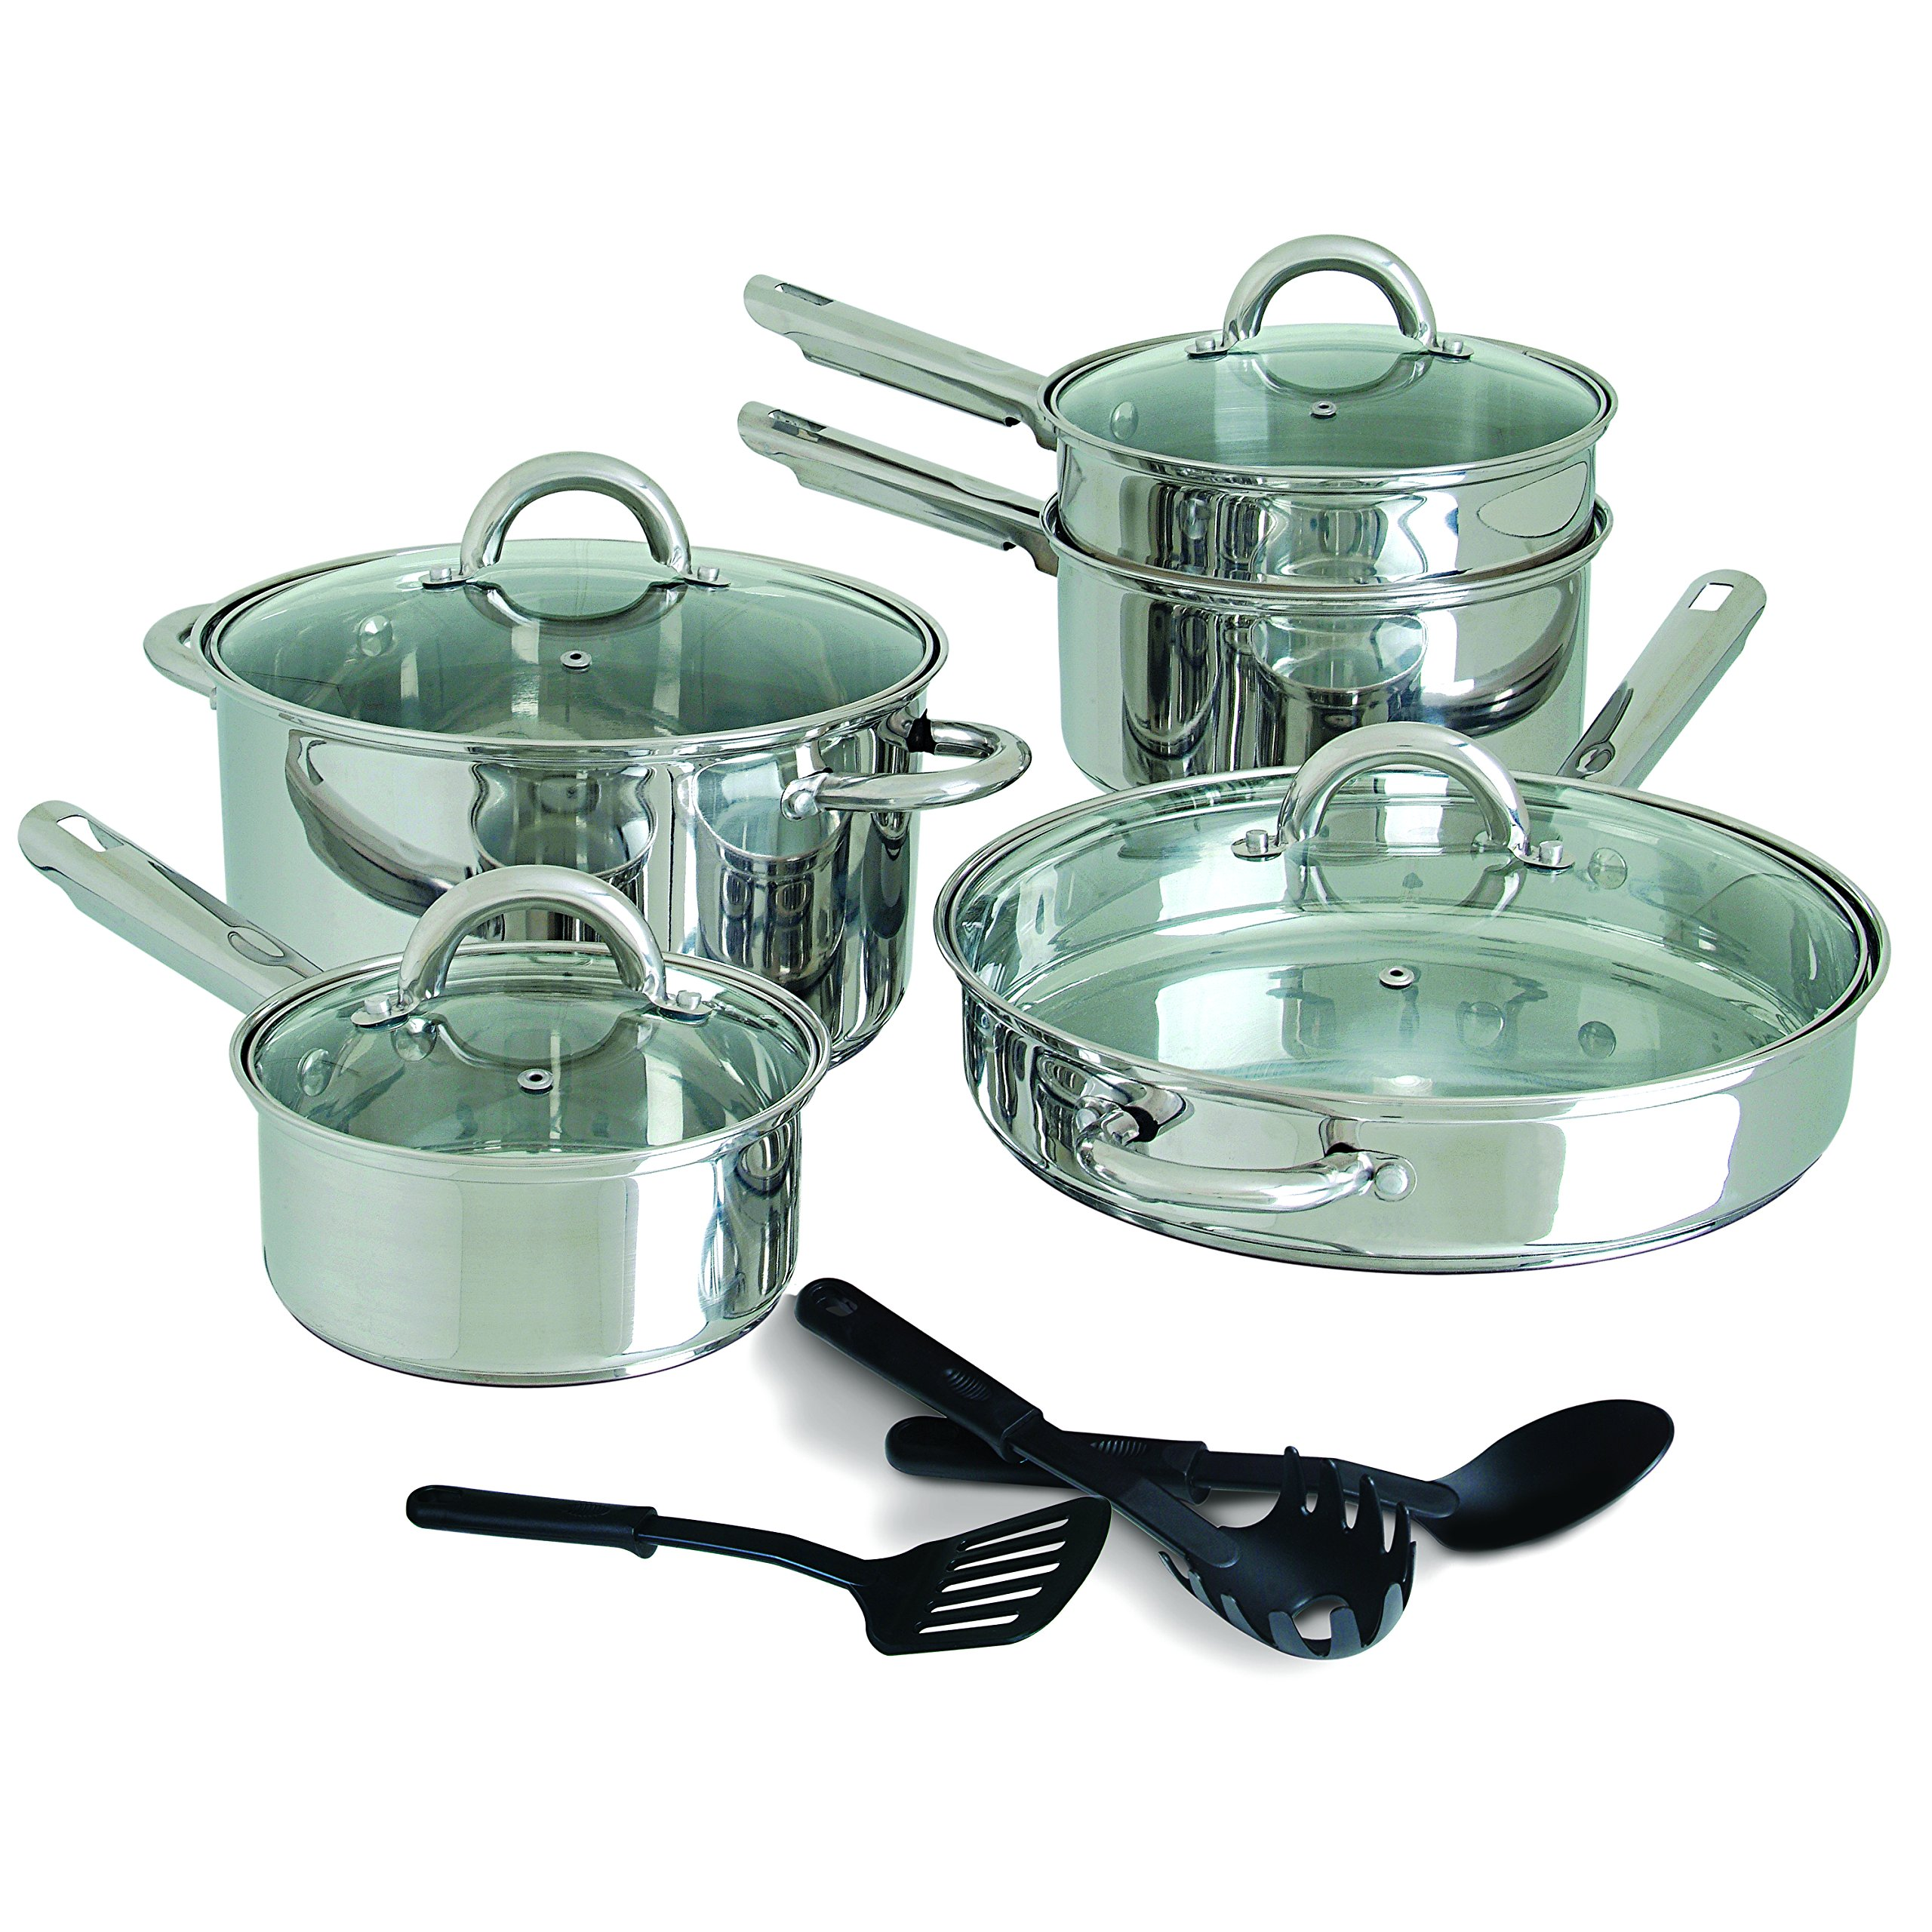 Gibson Home 64208.12 Abruzzo 12 Piece Stainless Steel Cookware Set, Silver